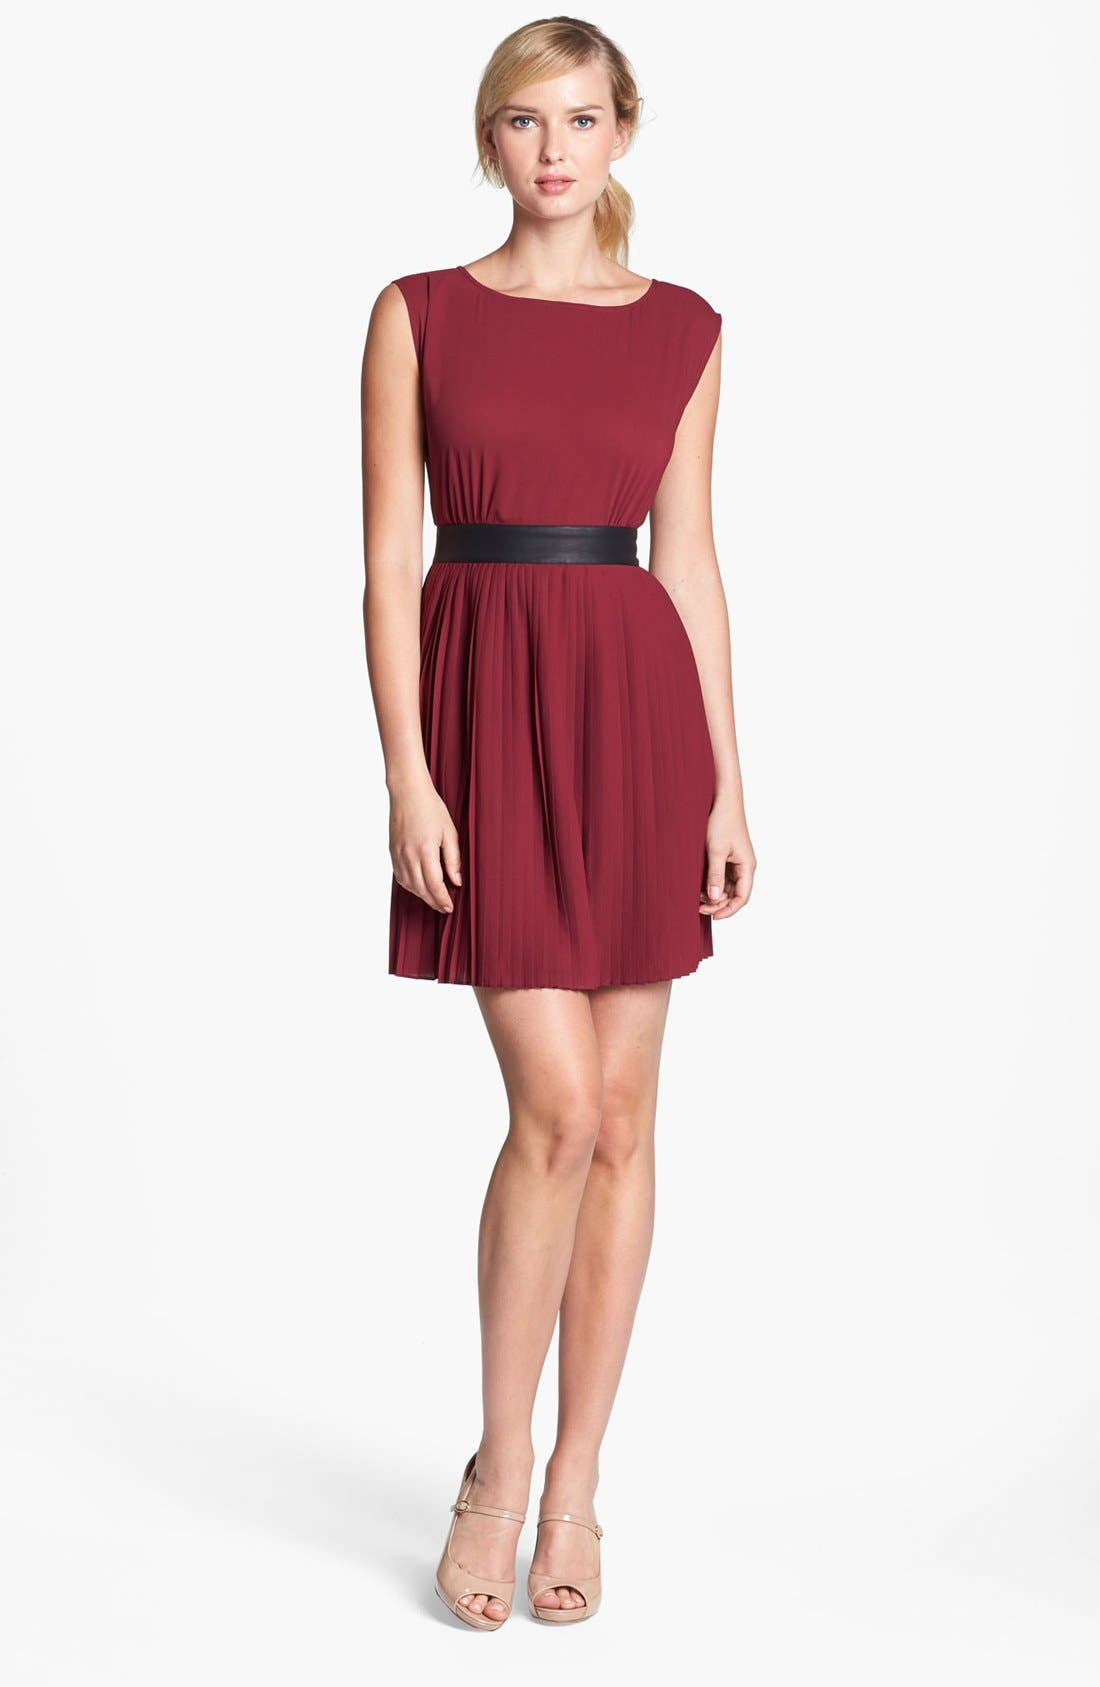 Alternate Image 1 Selected - BB Dakota Faux Leather Trim Pleated Chiffon Dress (Online Only)